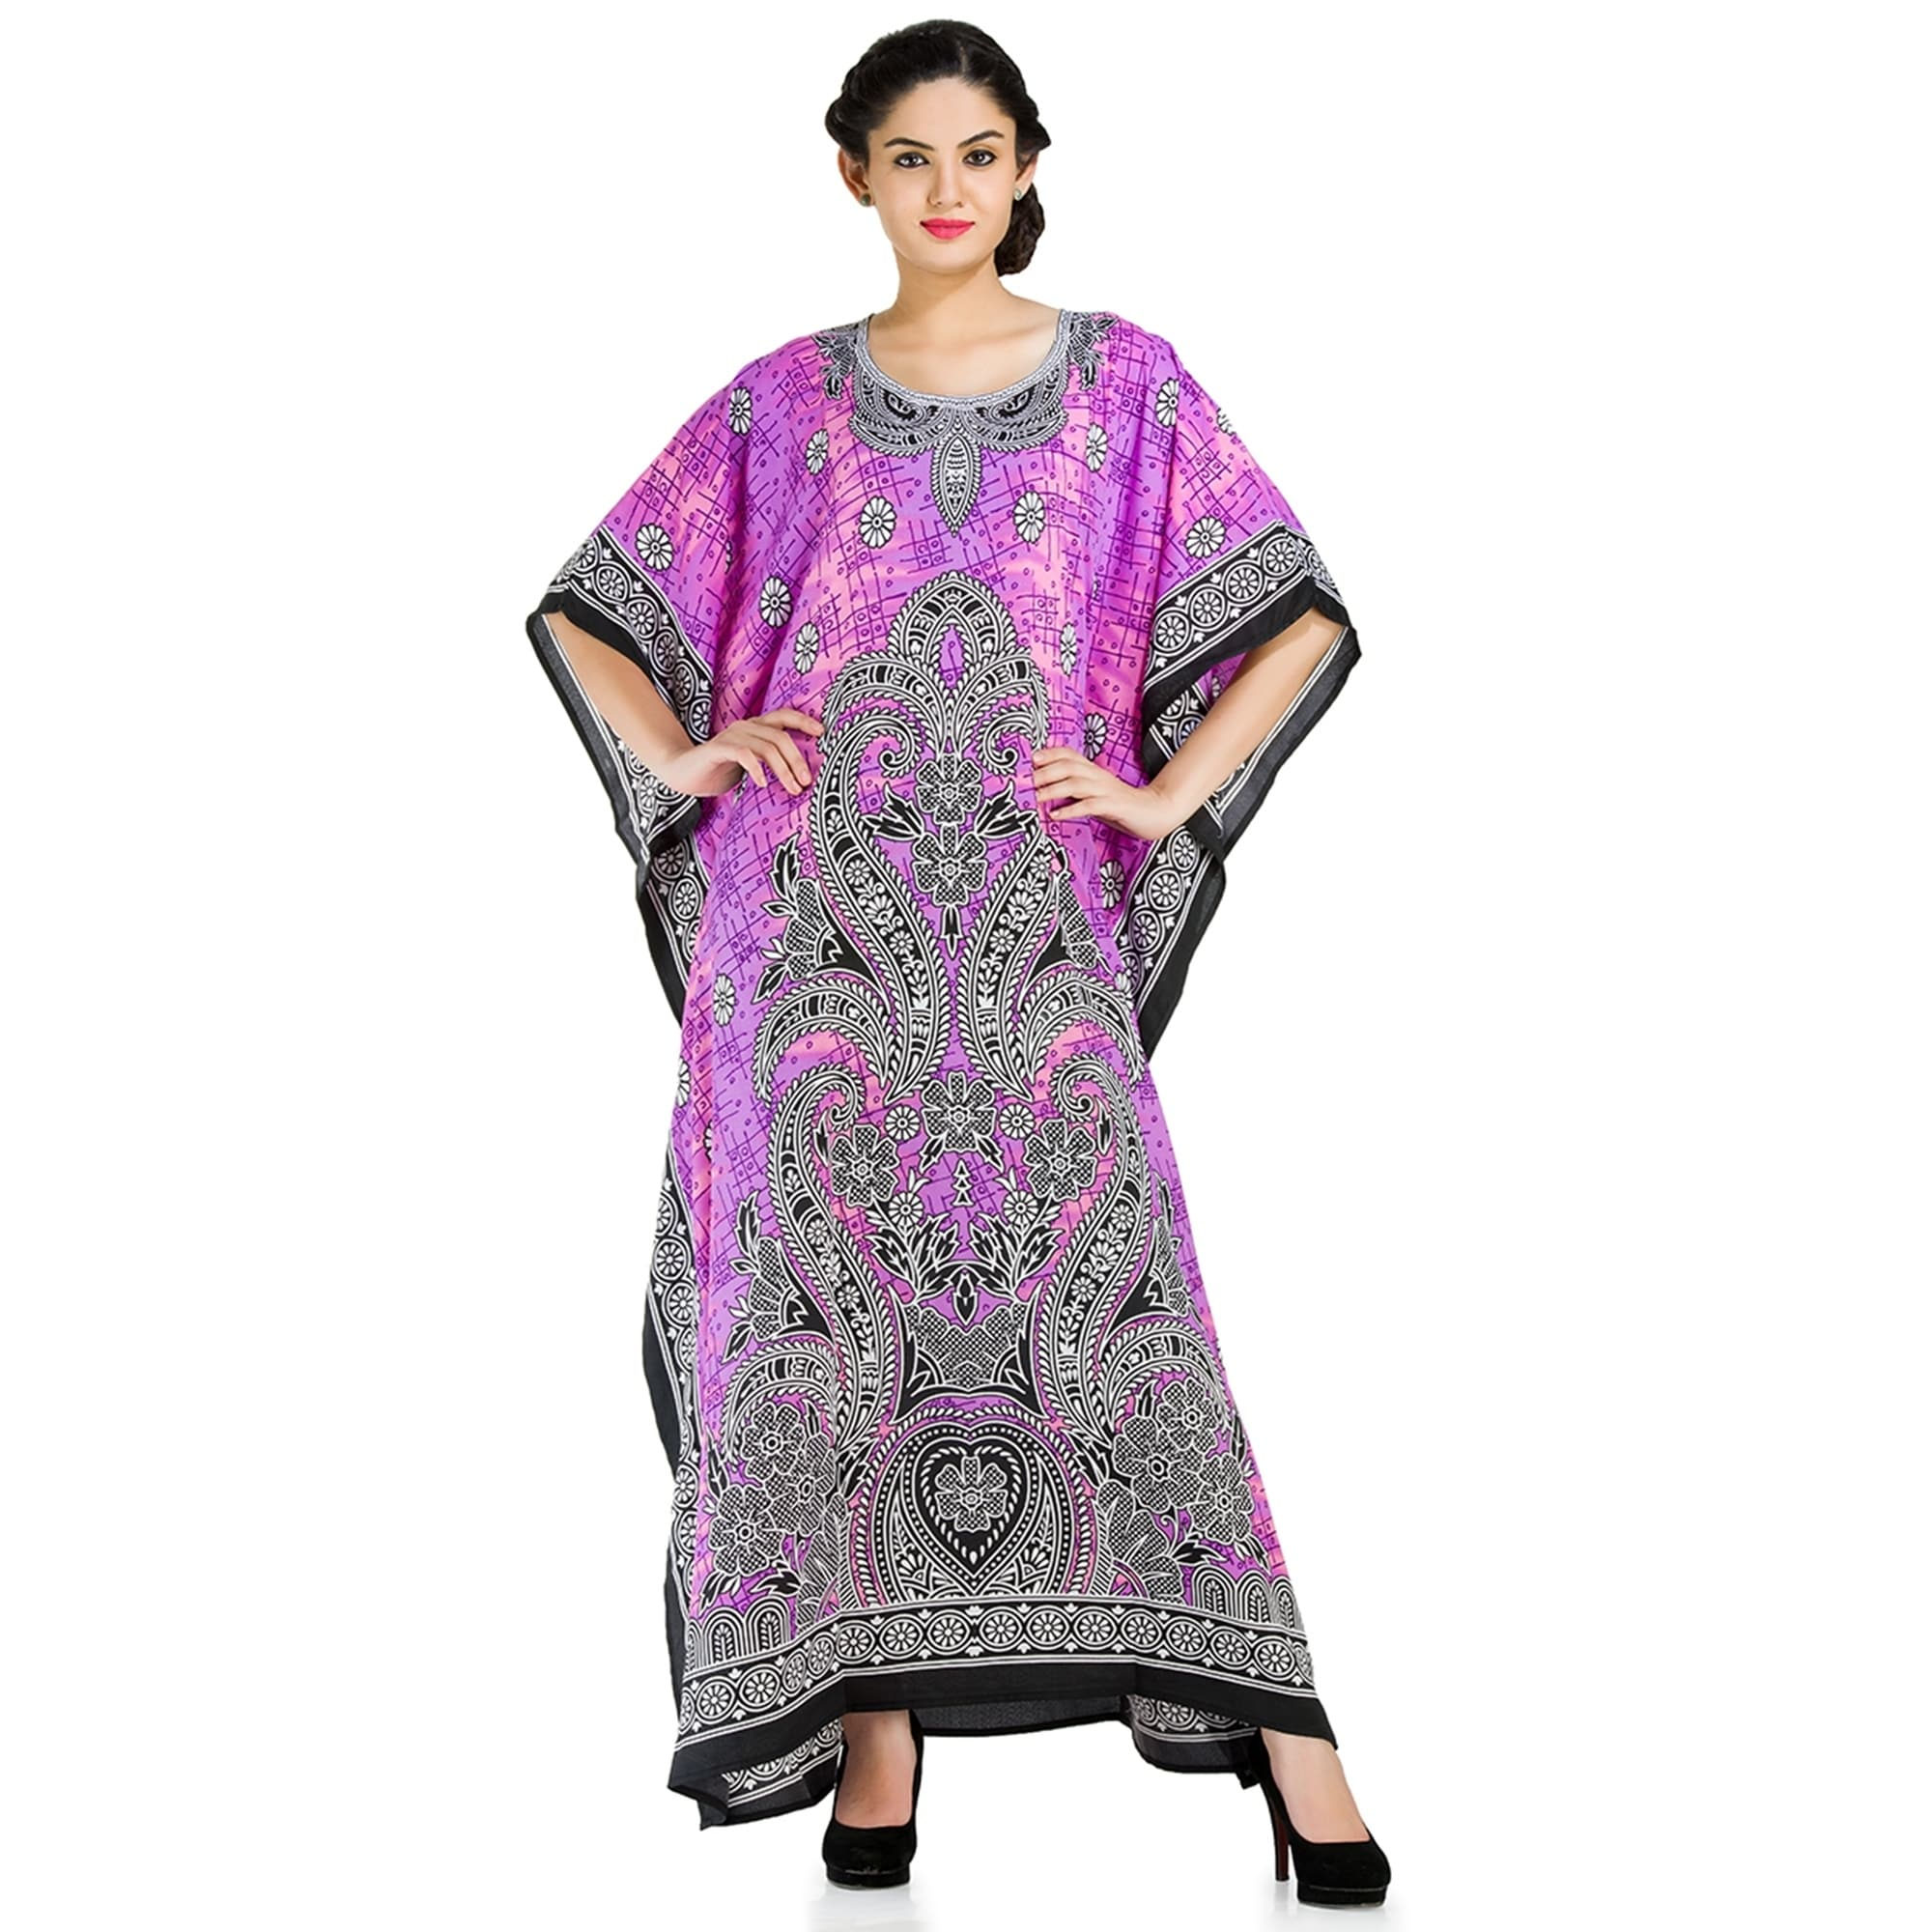 f92325ab88b Shop Comfortable Caftans Kimono Dress with Purple Colored Floral Print  Women s Caftan Dress - Free Shipping Today - Overstock - 17037609